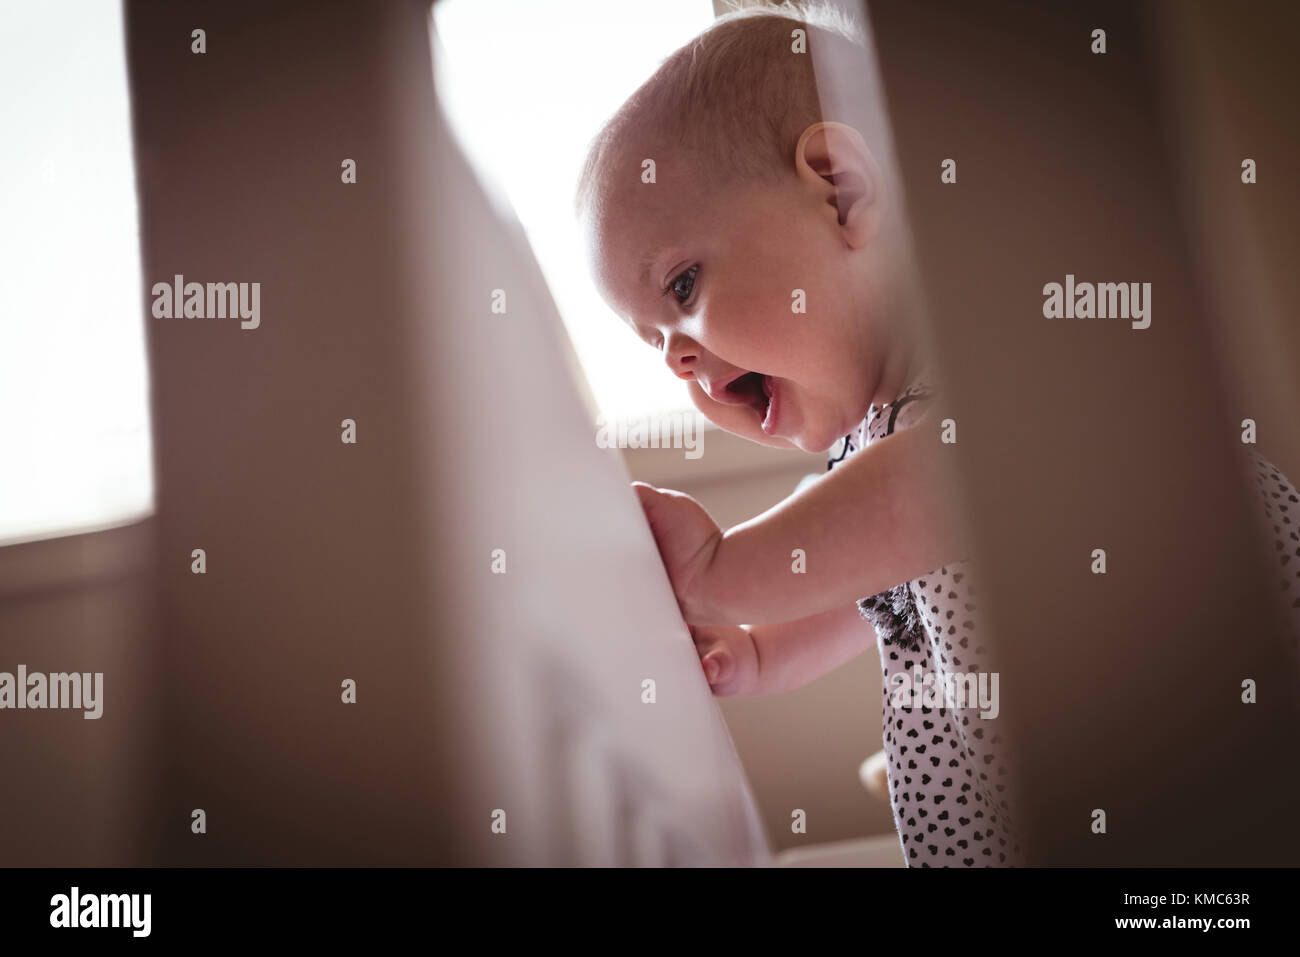 Cute girl standing in cot - Stock Image